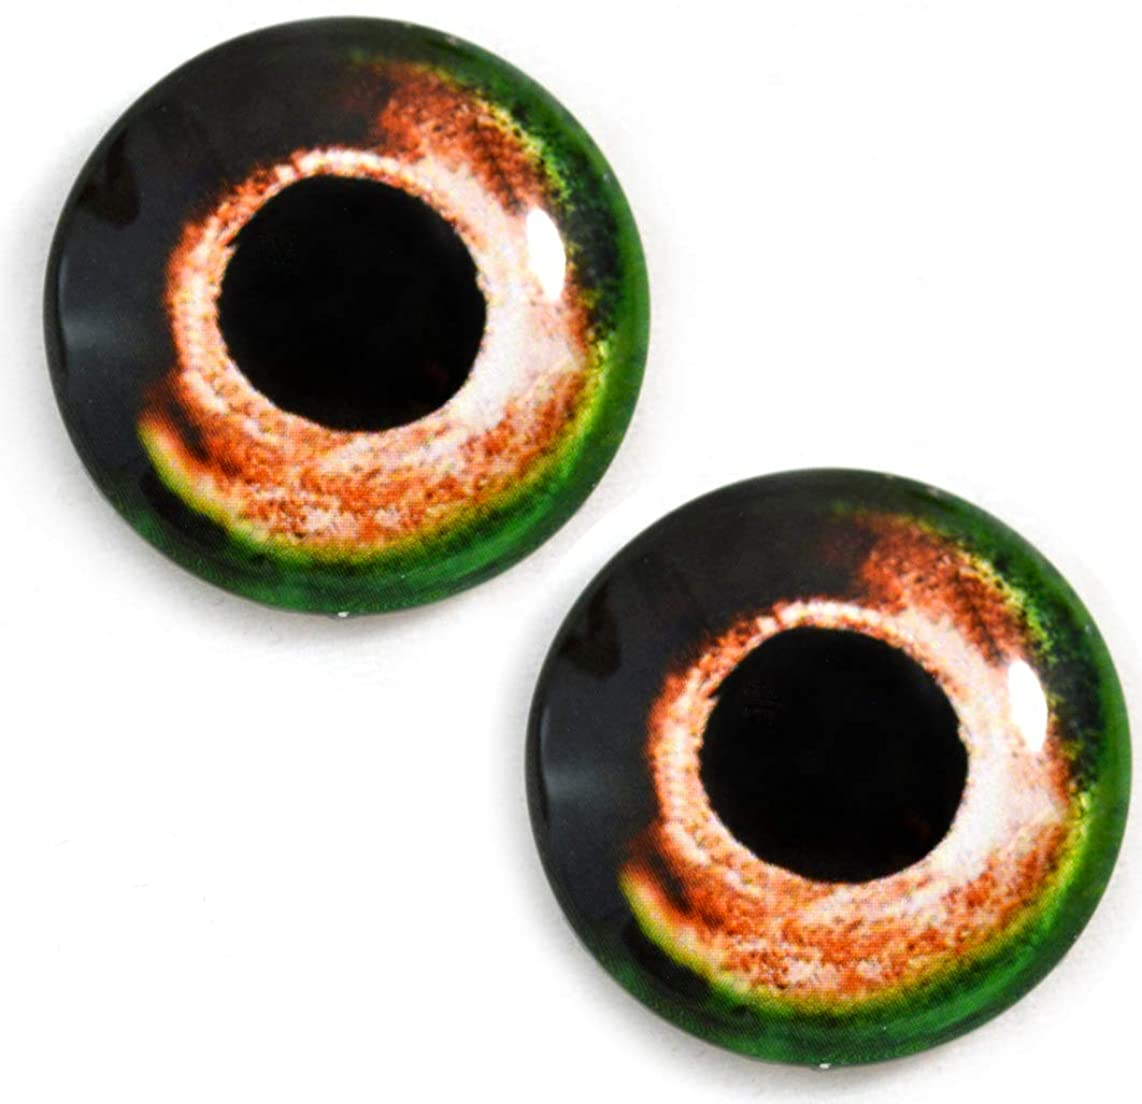 30mm Orange and Green Fish Glass Eyes Realistic Pair for Art Dolls, Sculptures, Props, Masks, Fursuits, Jewelry Making, Taxidermy, and More